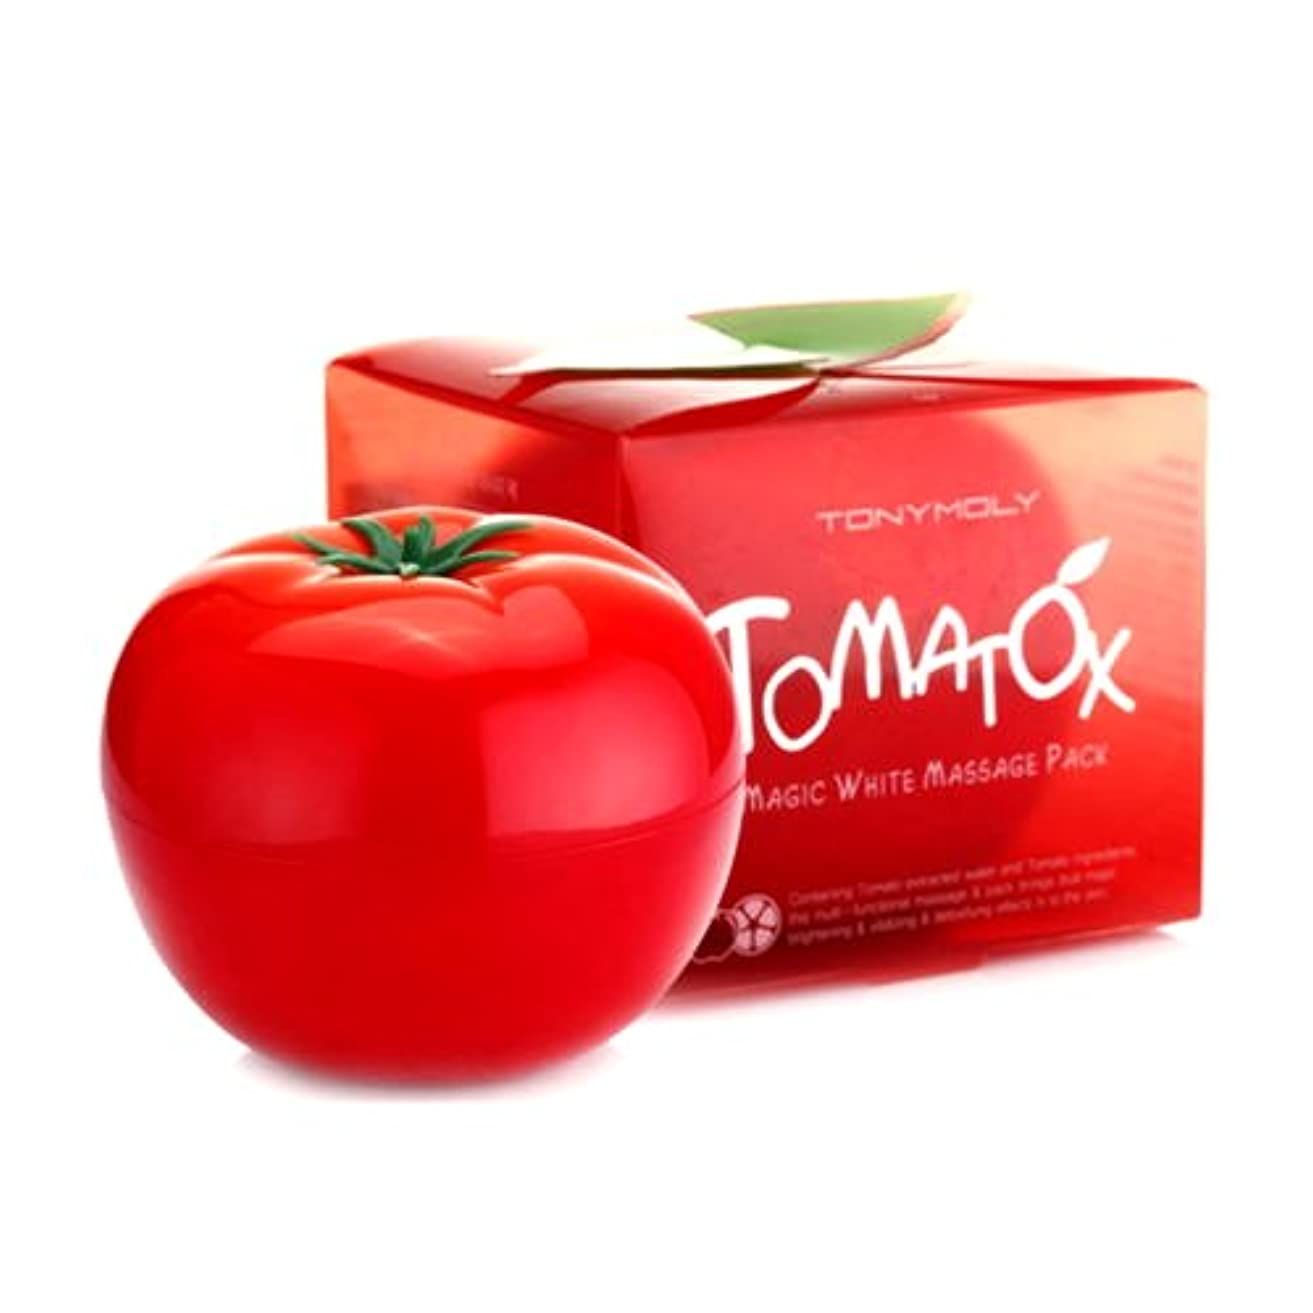 数字研究はちみつ(6 Pack) TONYMOLY Tomatox Magic Massage Pack (並行輸入品)